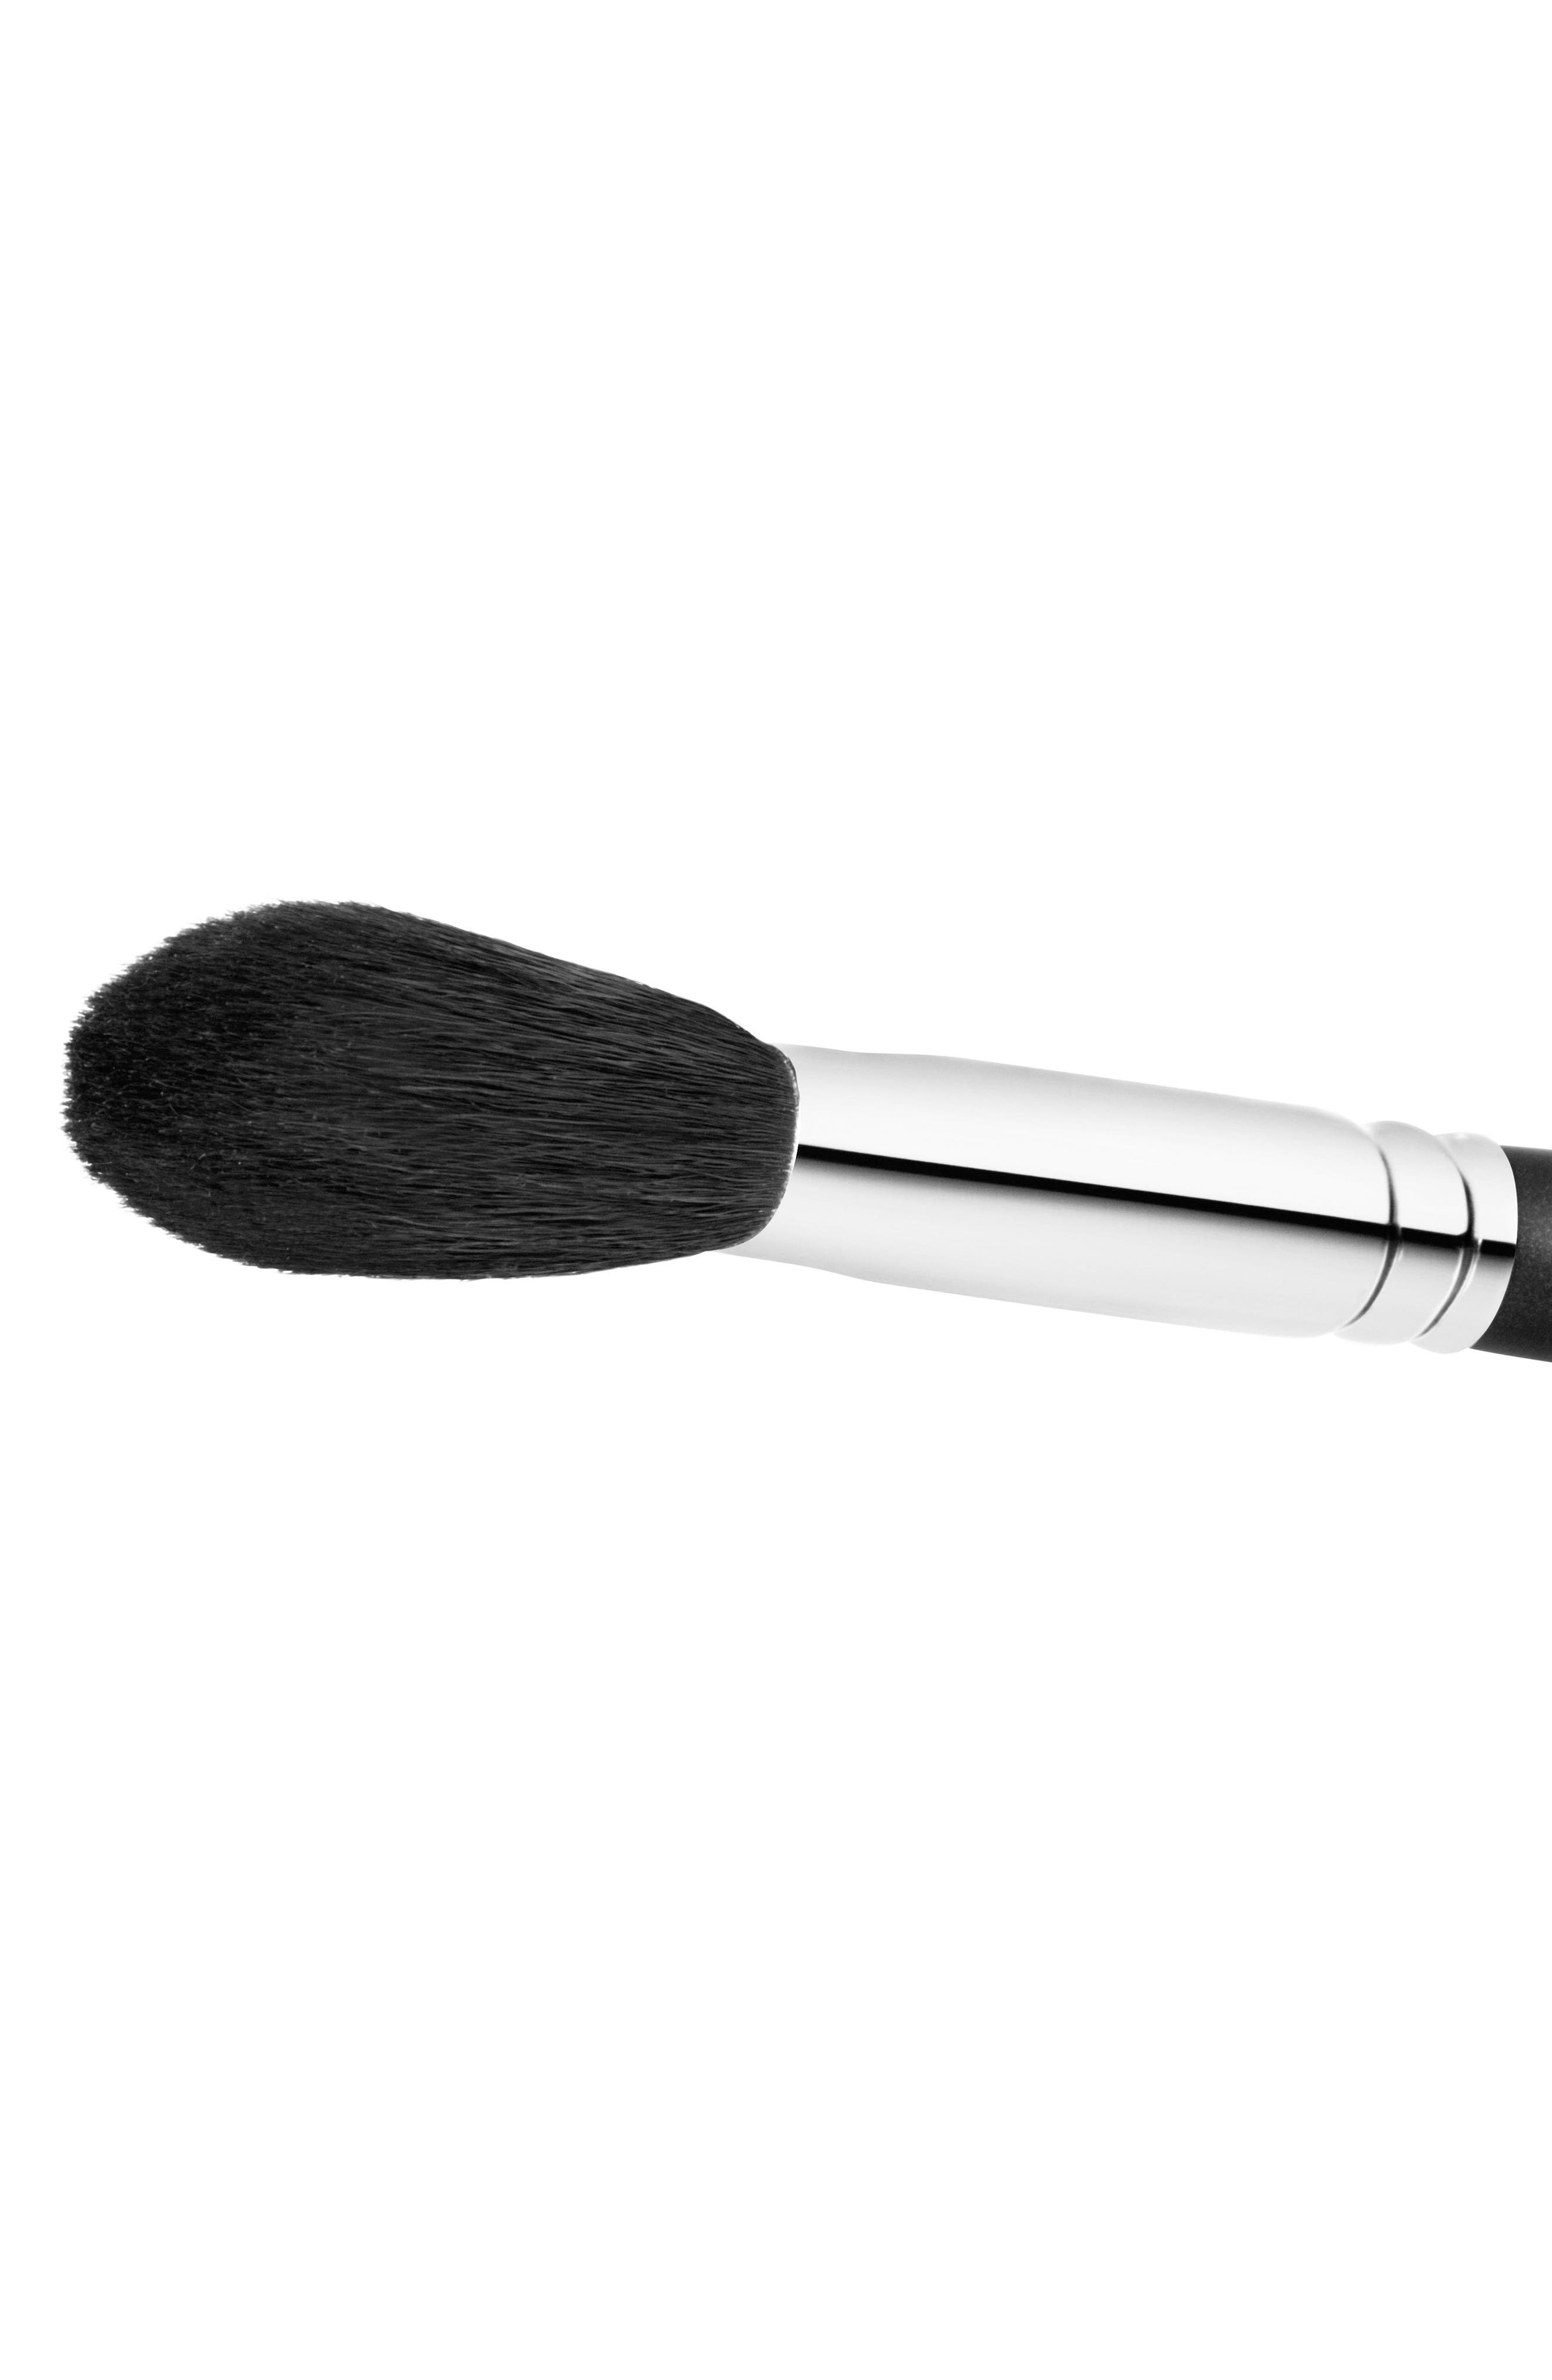 MAC 129S Synthetic Powder/Blush Brush,                             Alternate thumbnail 3, color,                             No Color